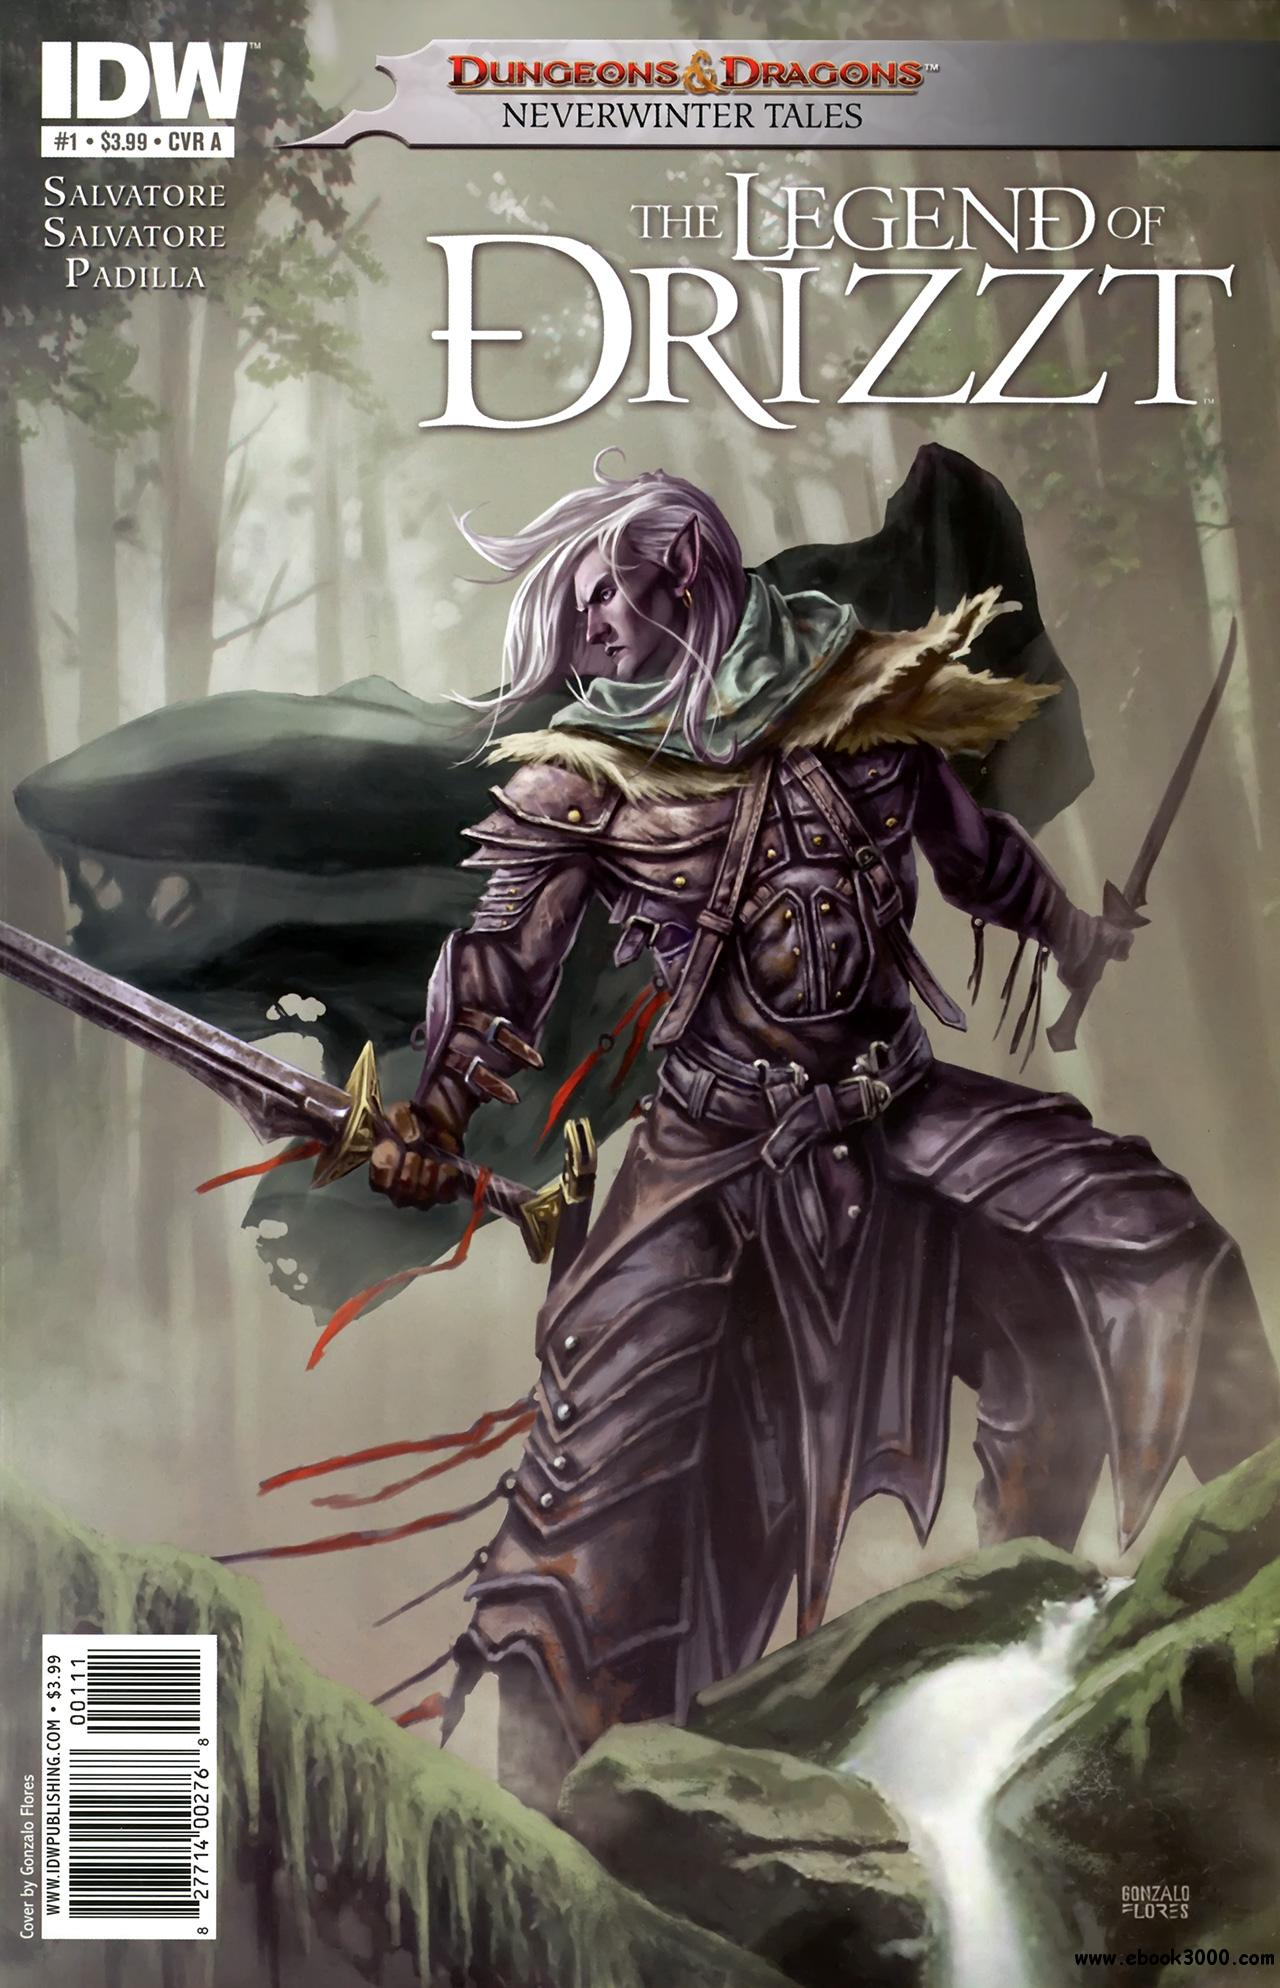 Dungeons & Dragons - The Legend of Drizzt - Neverwinter Tales #1 (of 06) (20